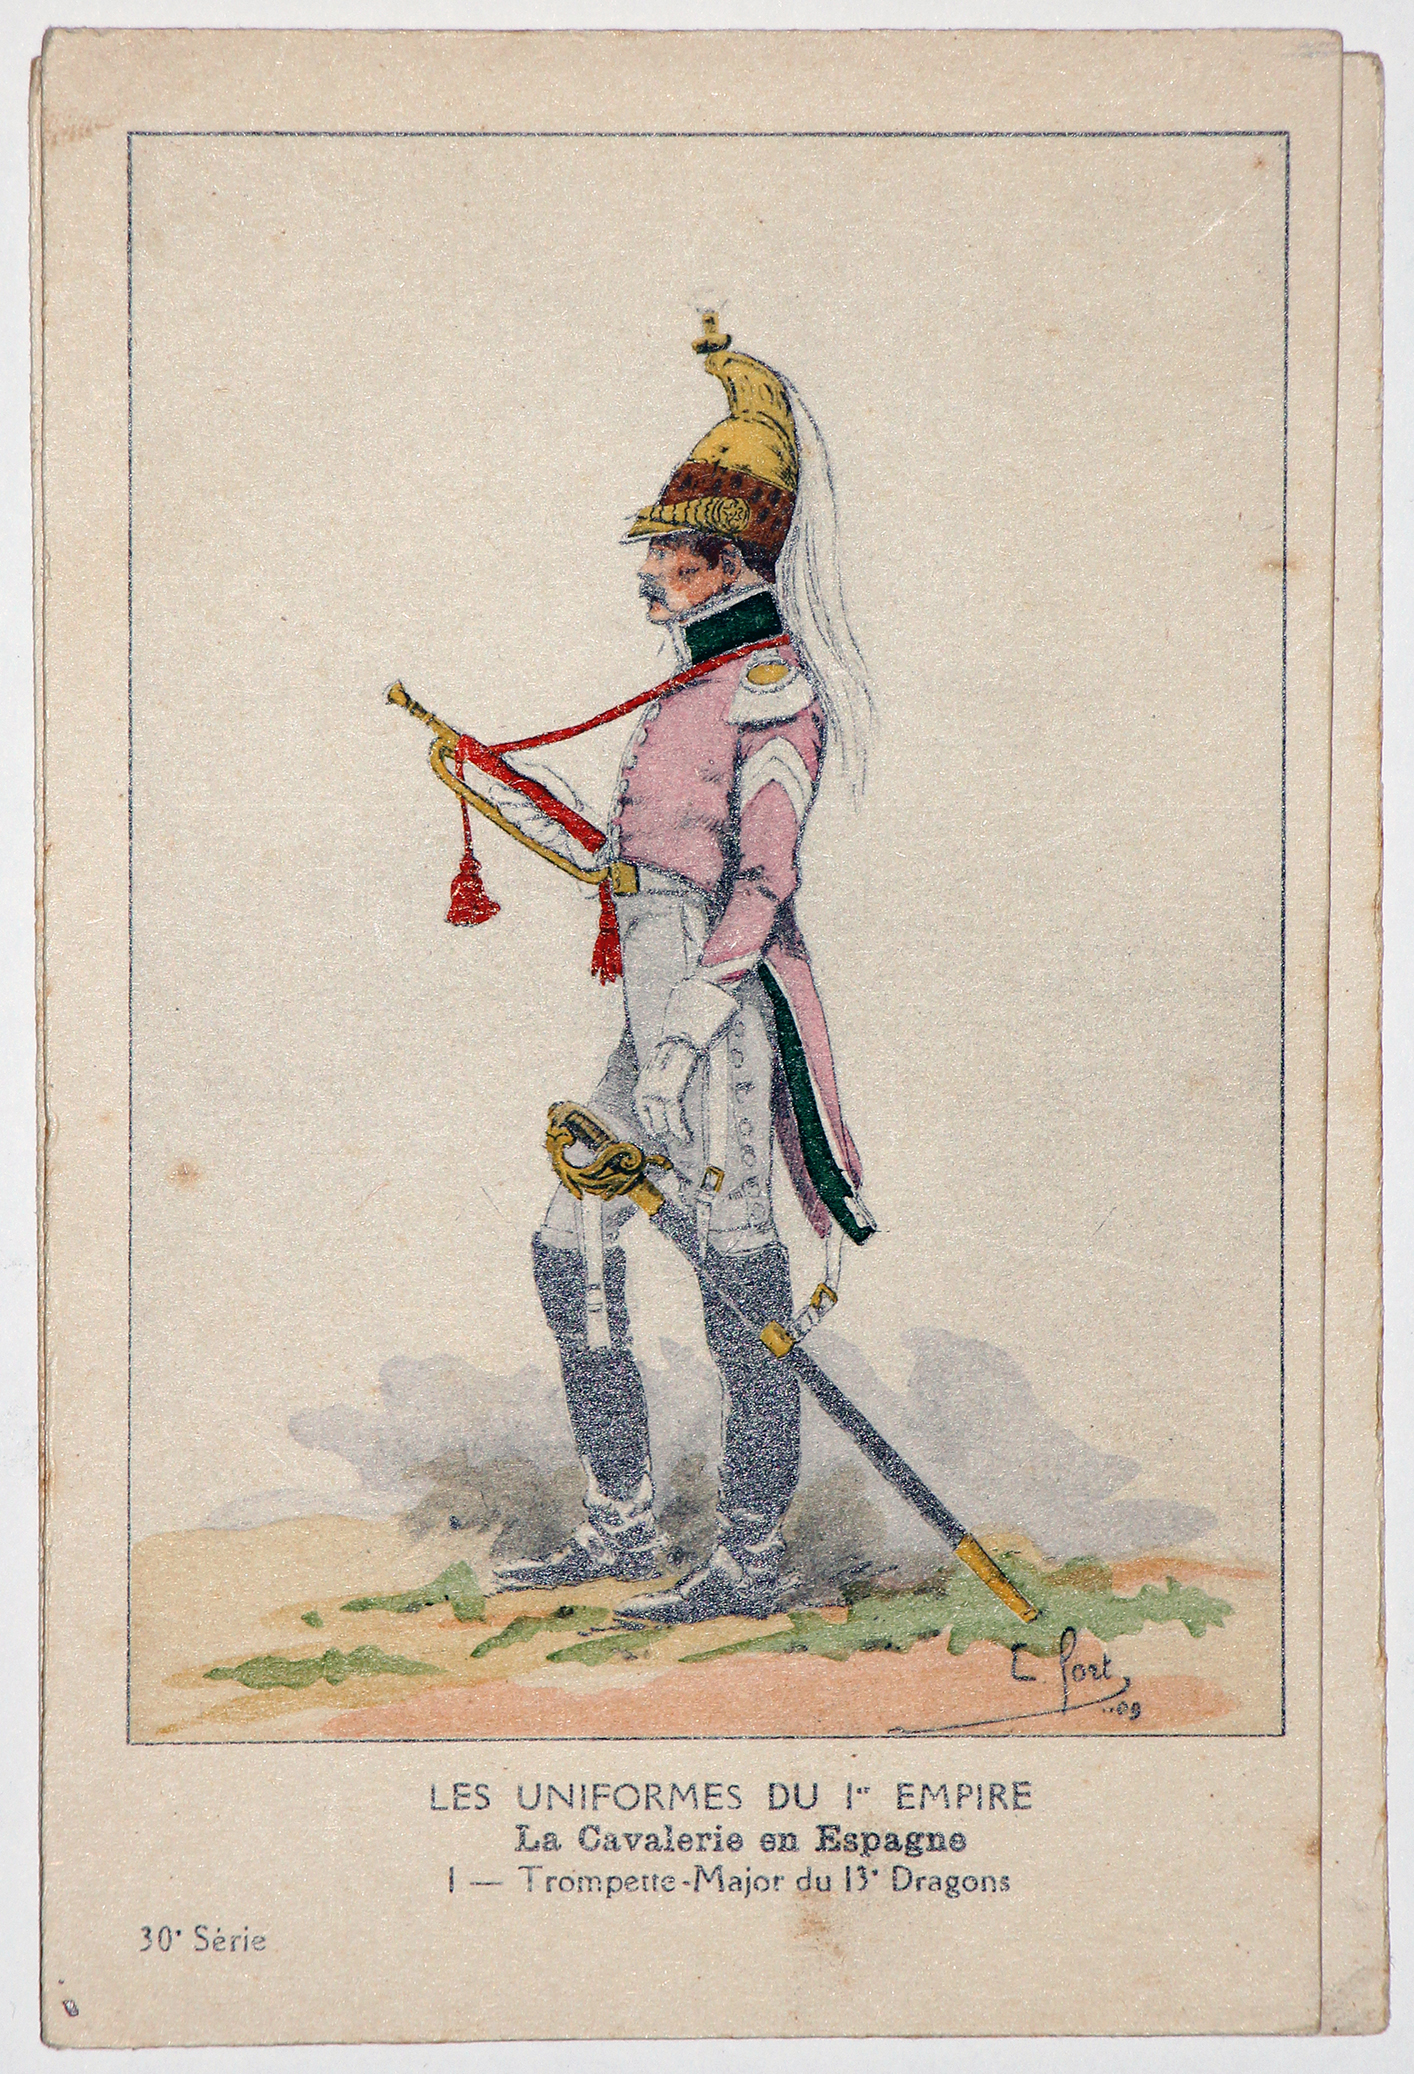 Carte Bucquoy - Les Uniformes du 1er Empire - Série 30 - Carte 1